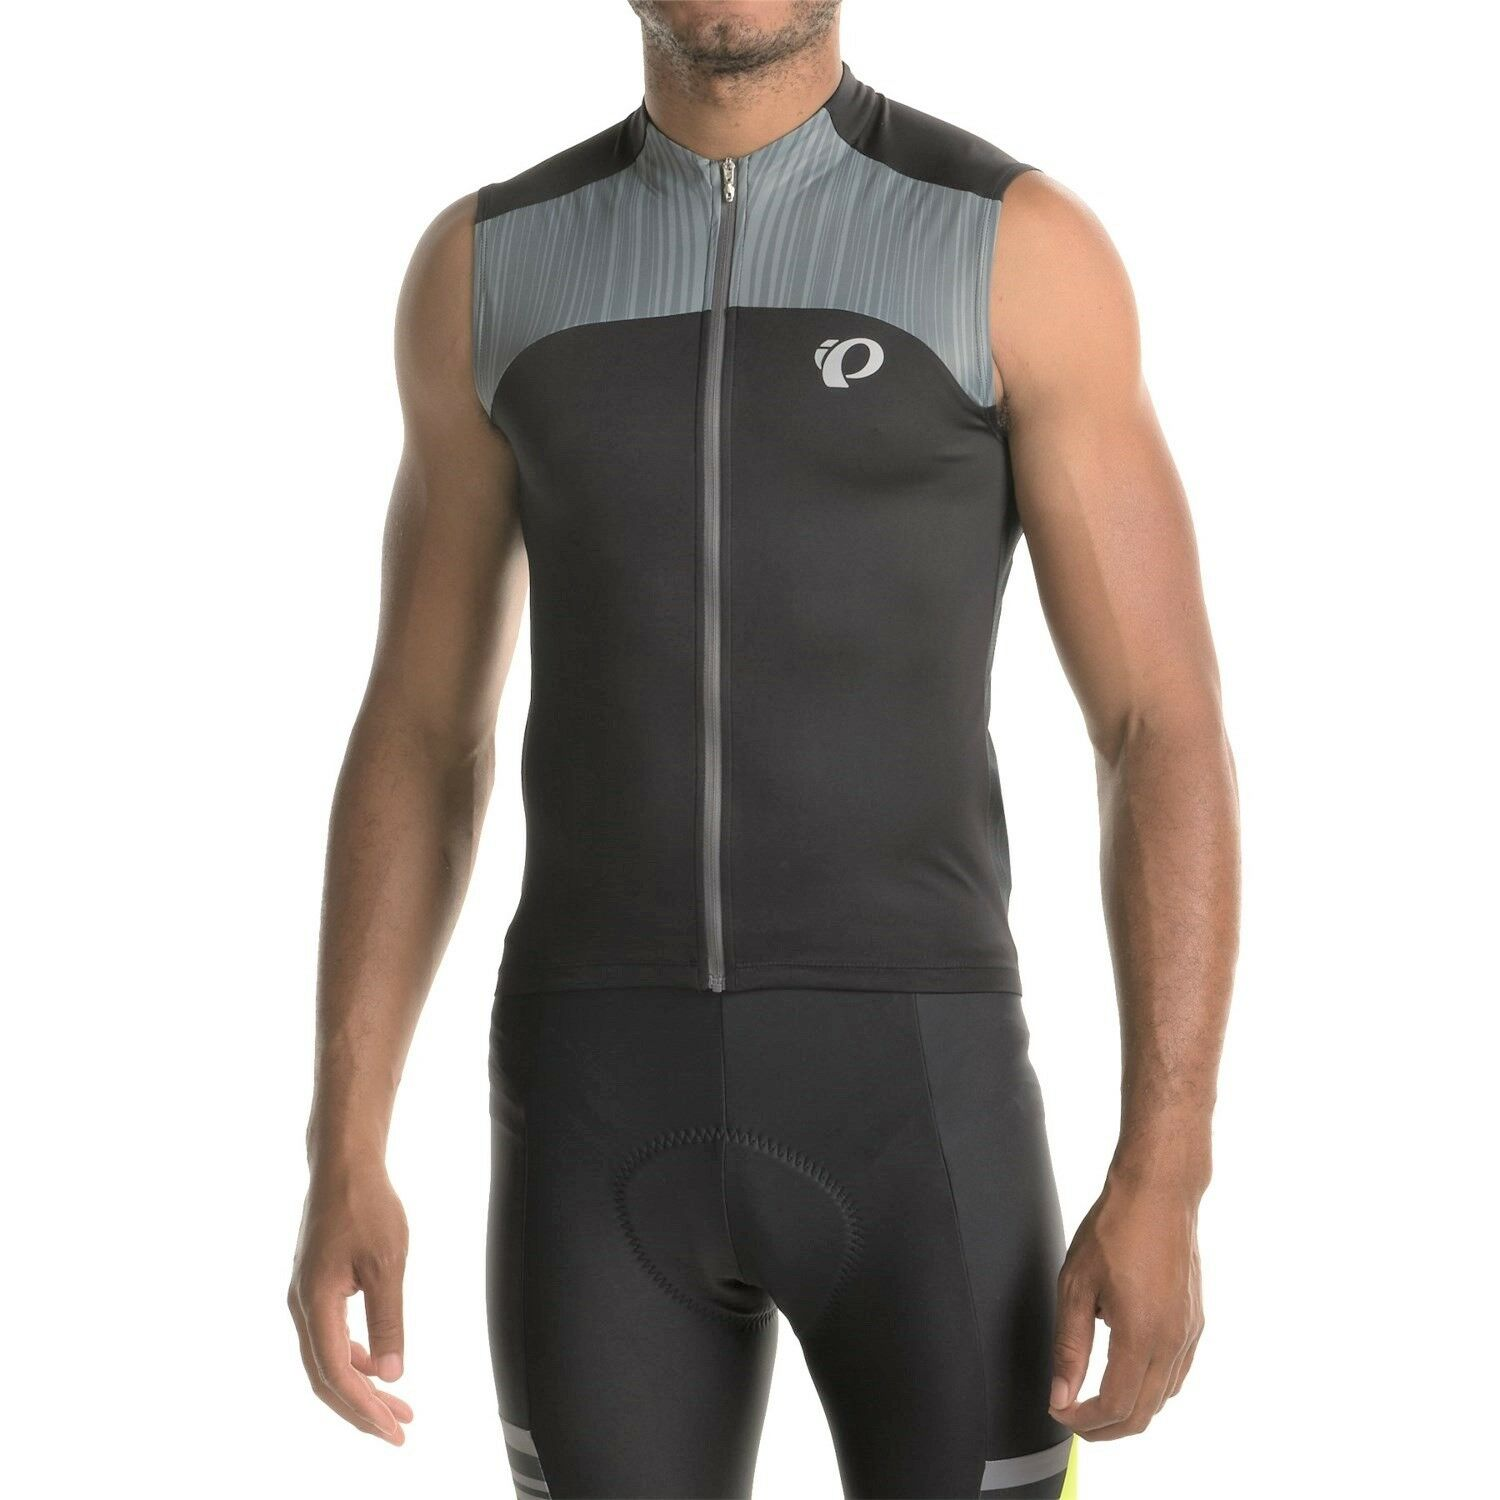 PEARL iZUMi ELITE Pursuit Men's Sleeveless Cycling Jersey Full-Zip Blk Gry S NWT